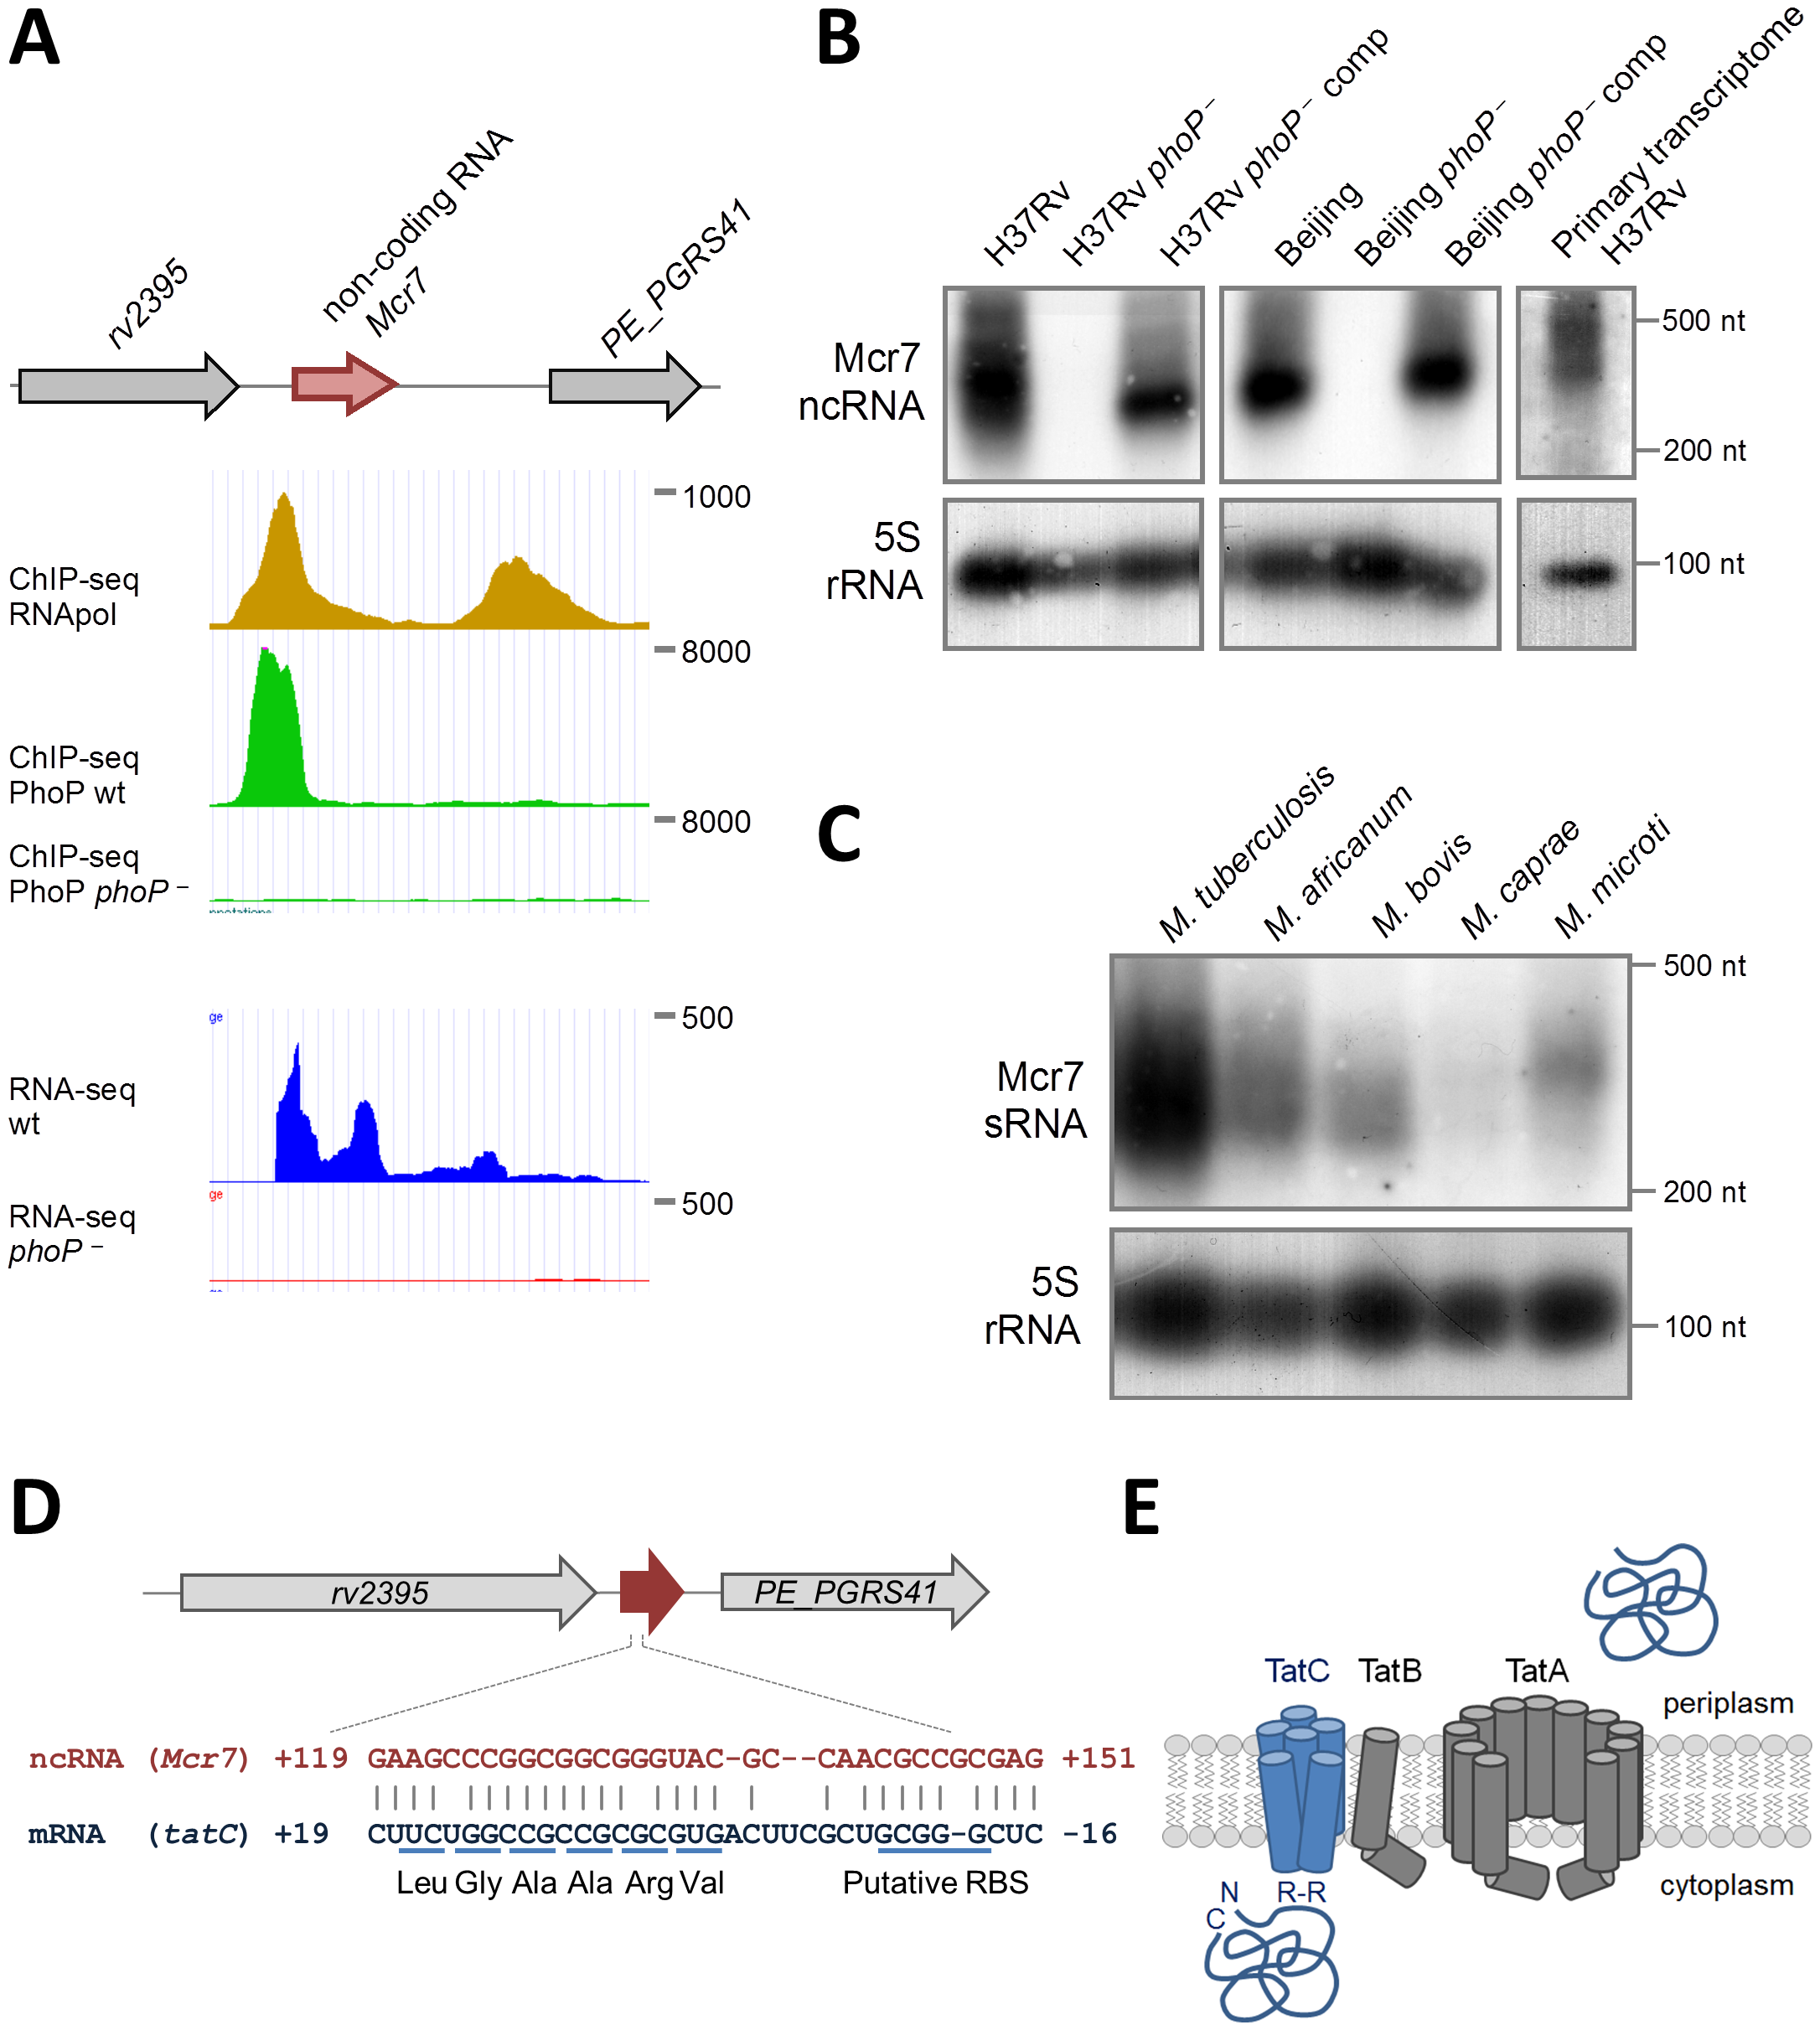 Characterization of <i>mcr7</i> as the major PhoP-regulated target.